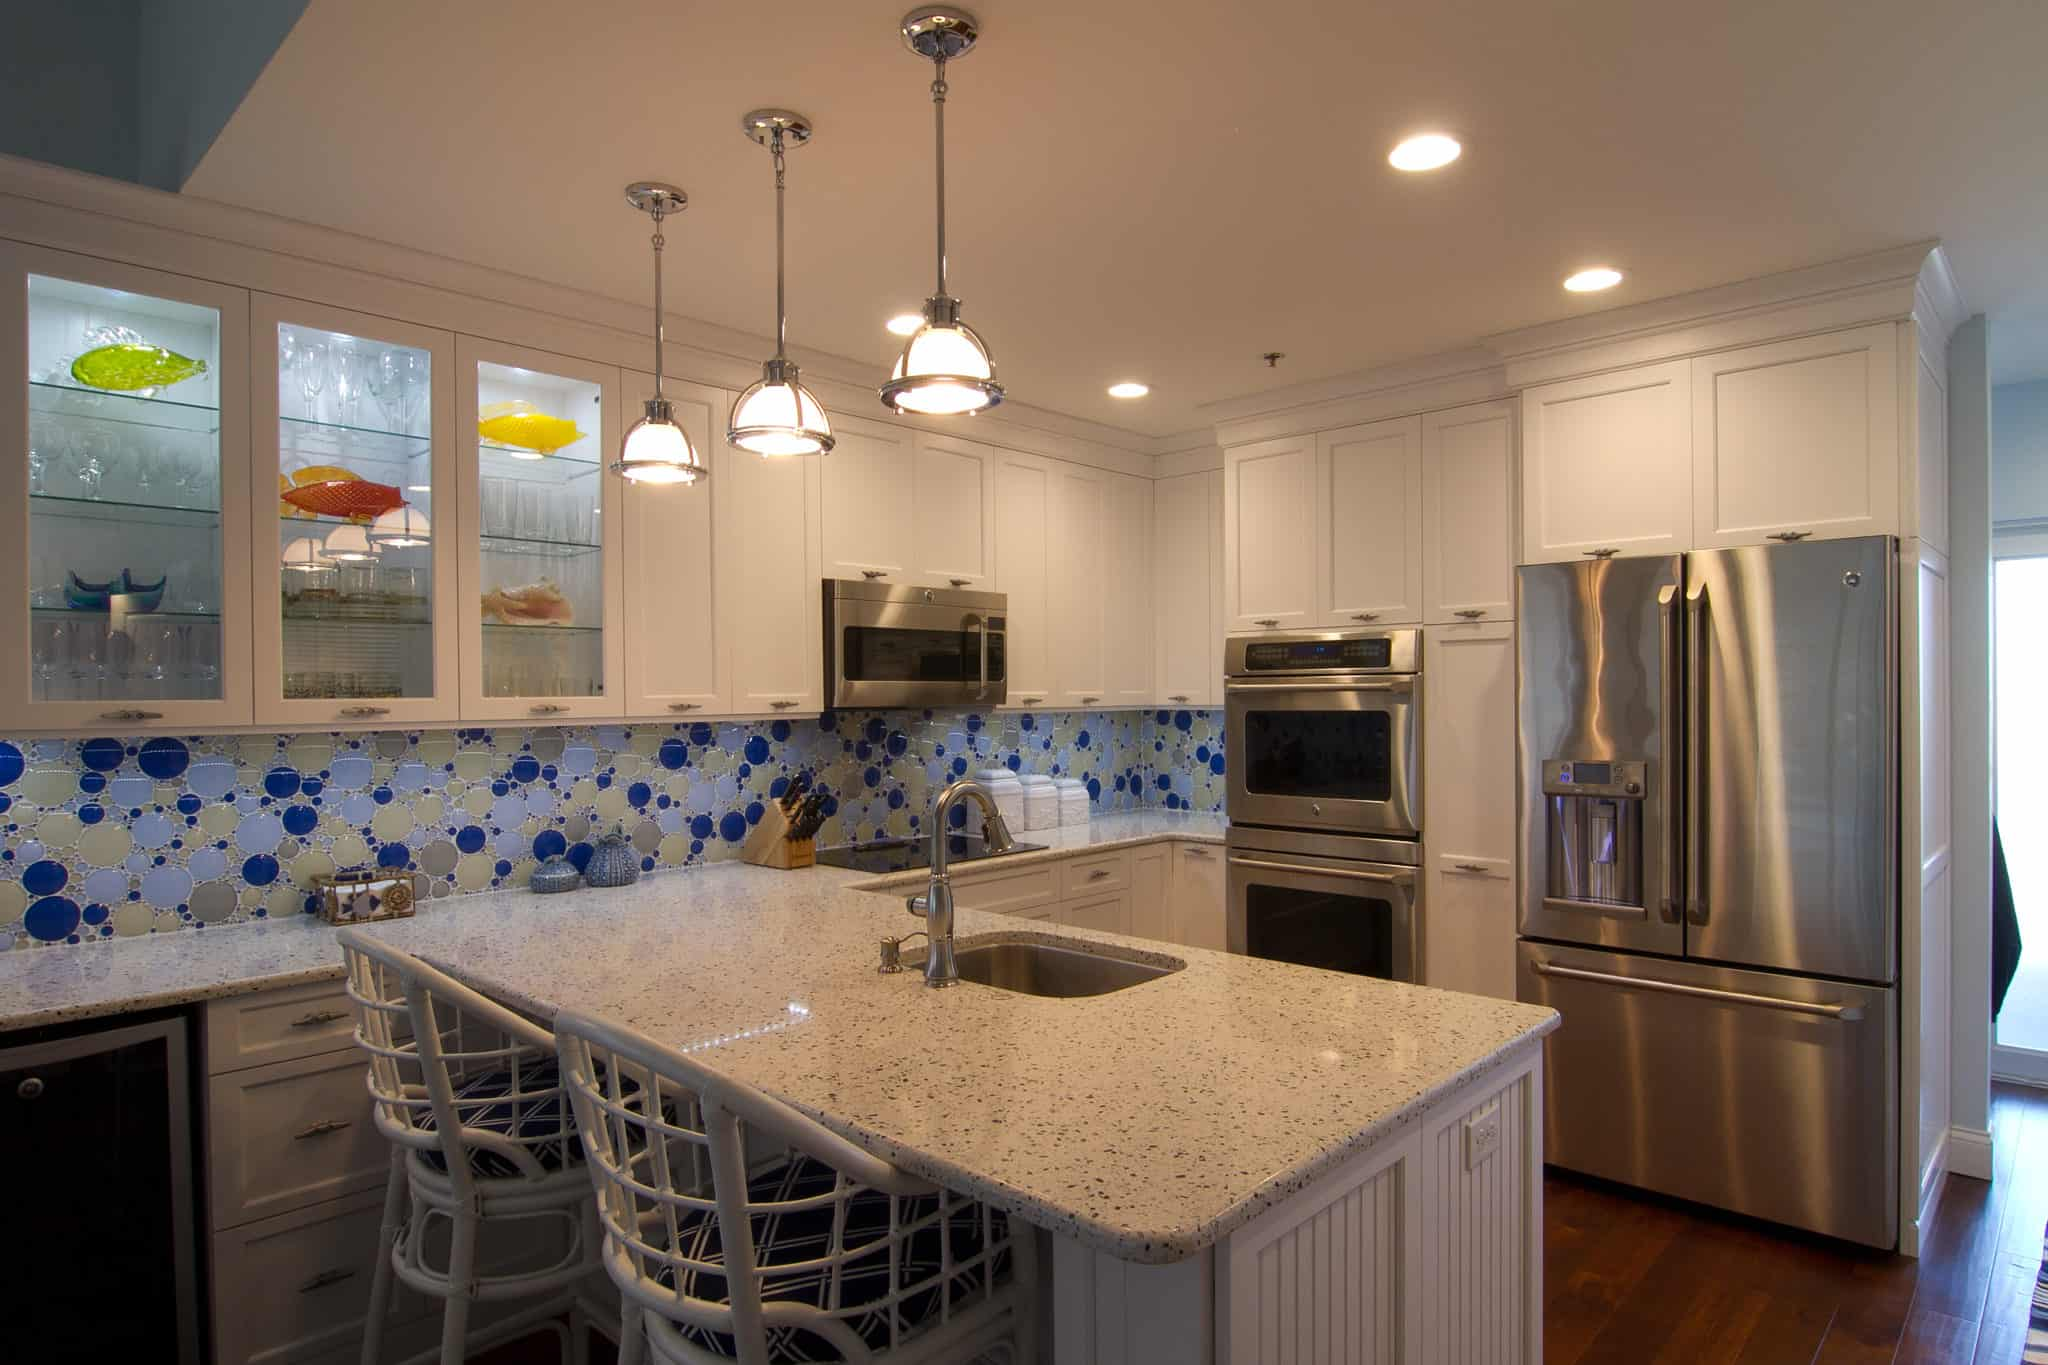 White kitchen with blue backsplash